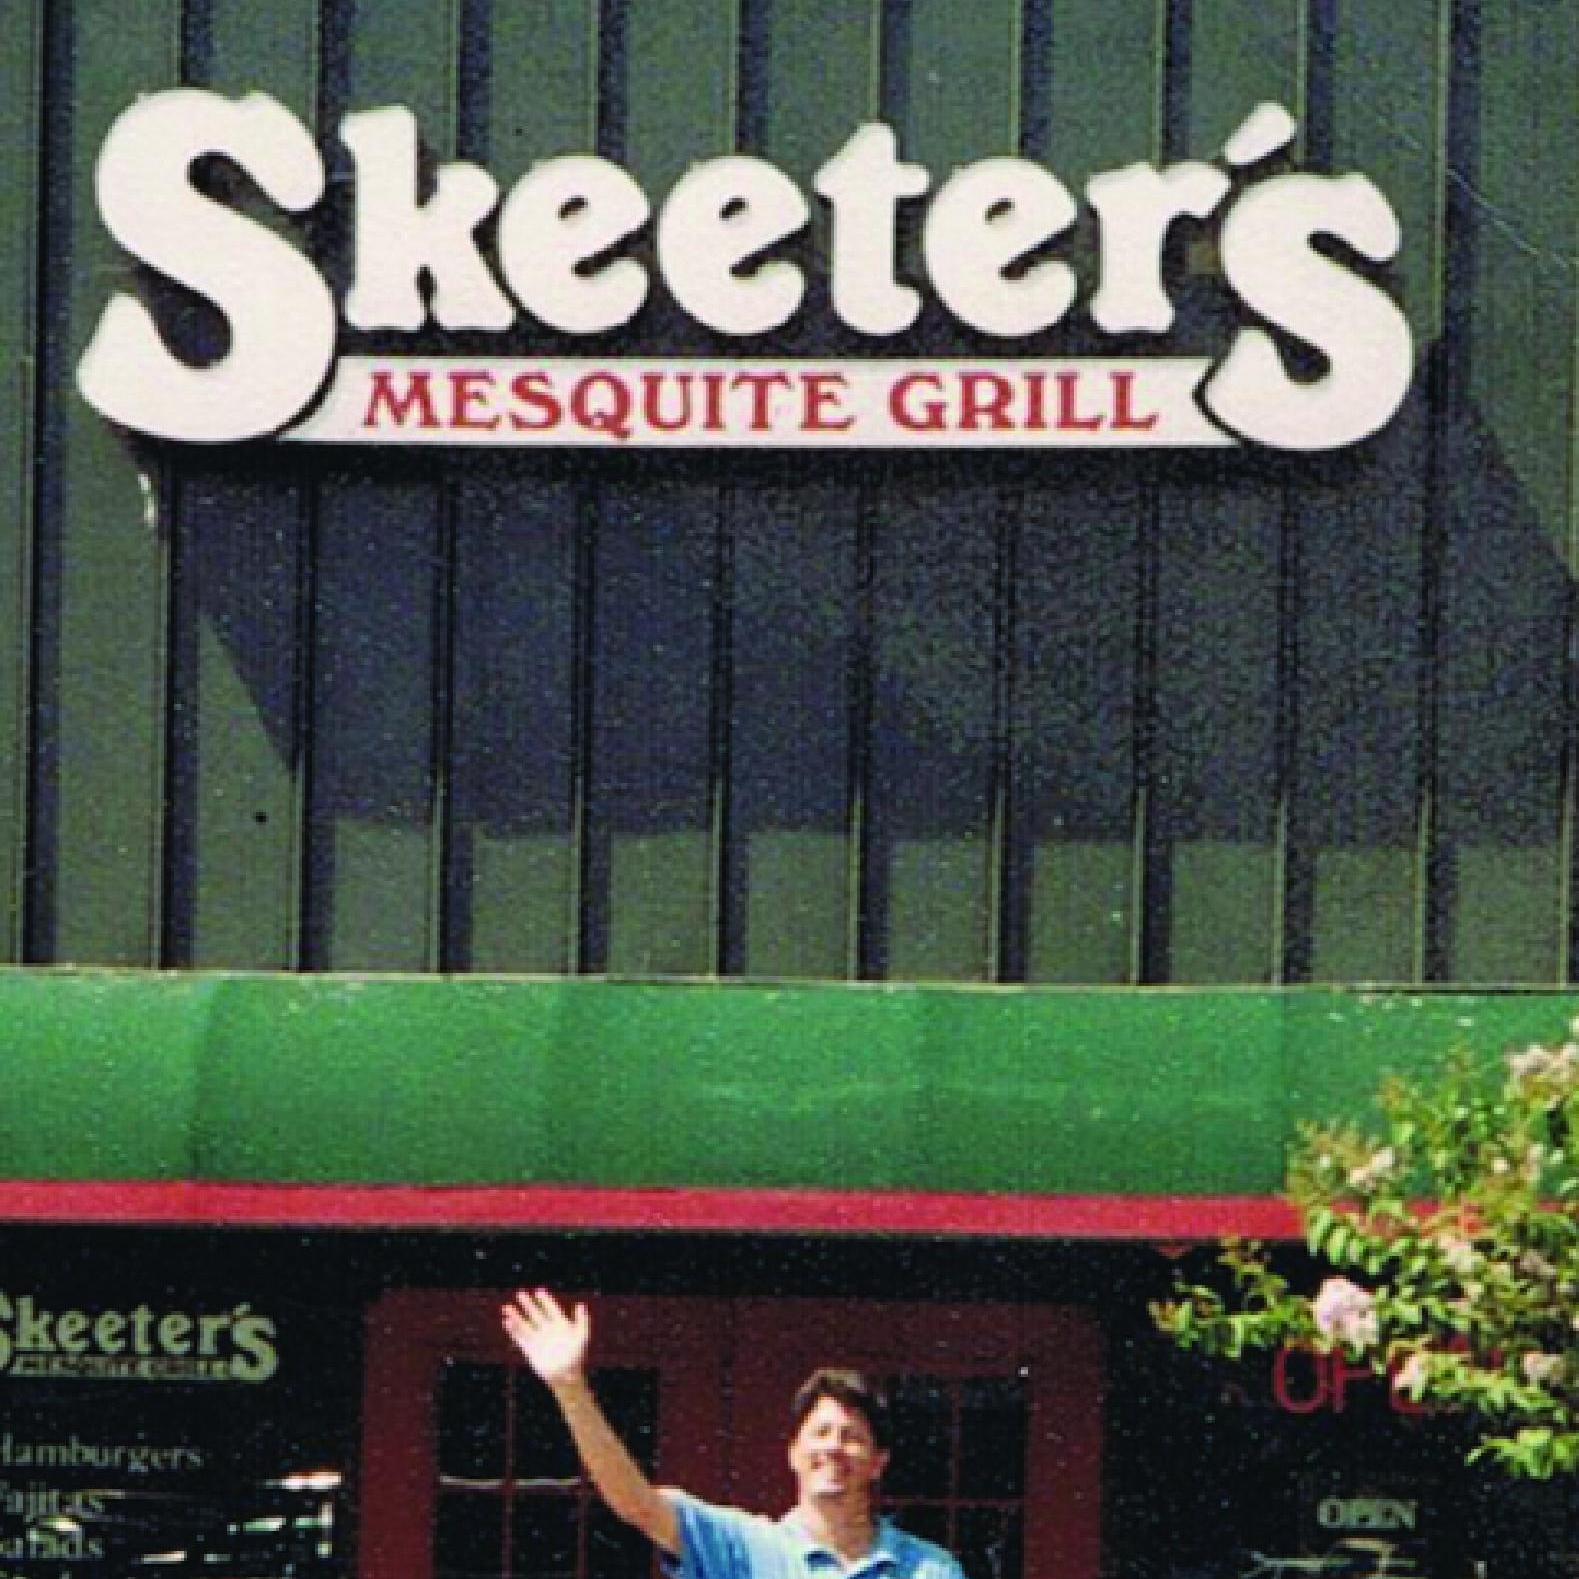 SKEETERS MESQUITE GRILL  - Four Houston Area Locations